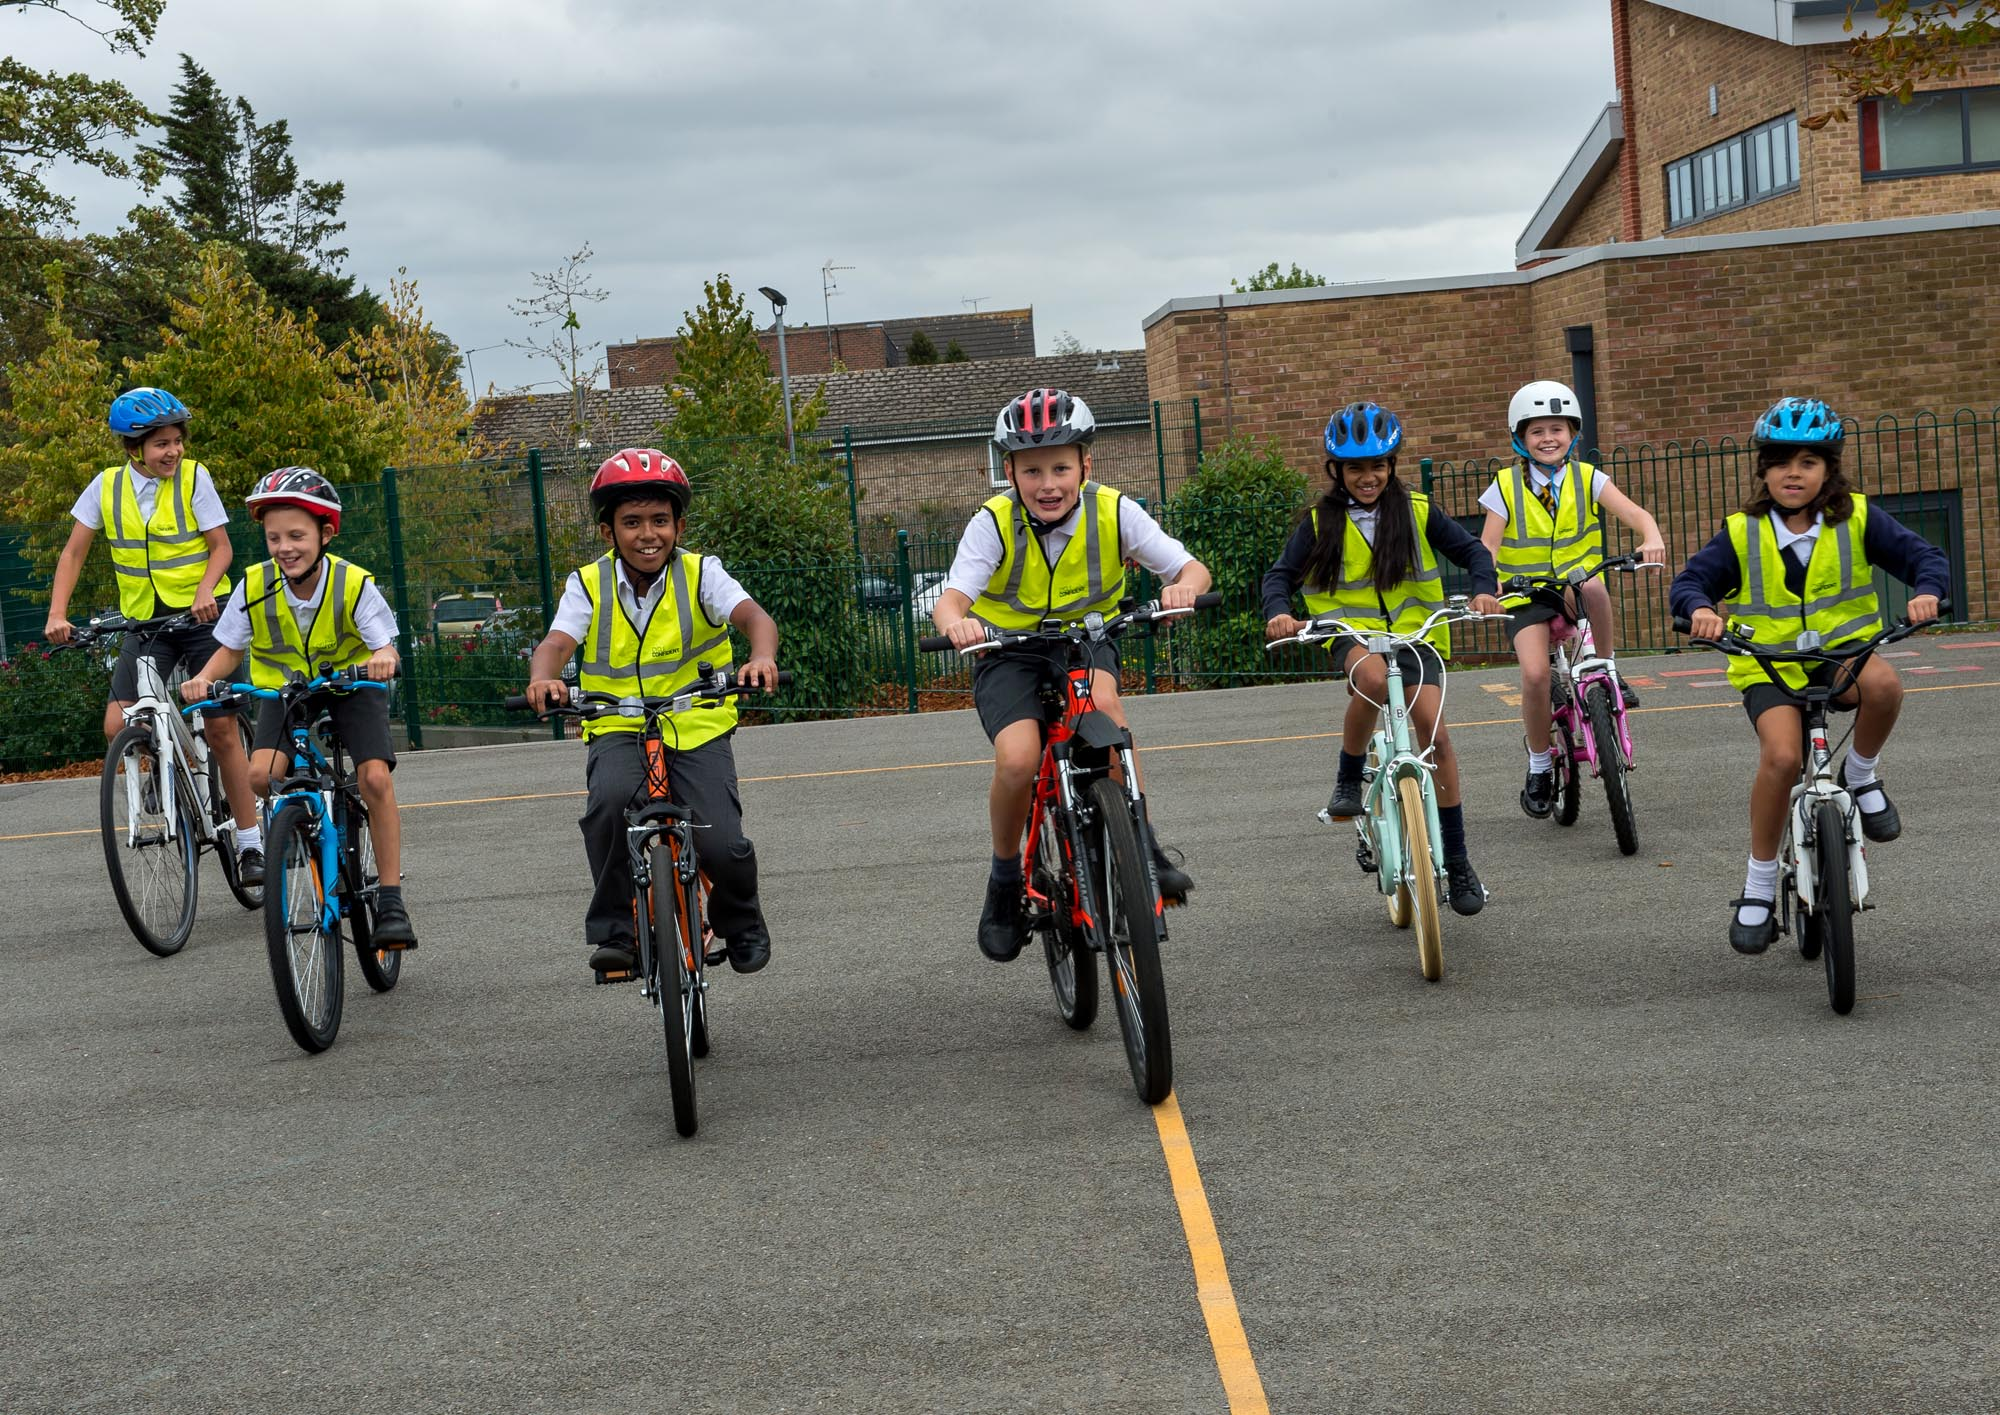 Group of children cycling